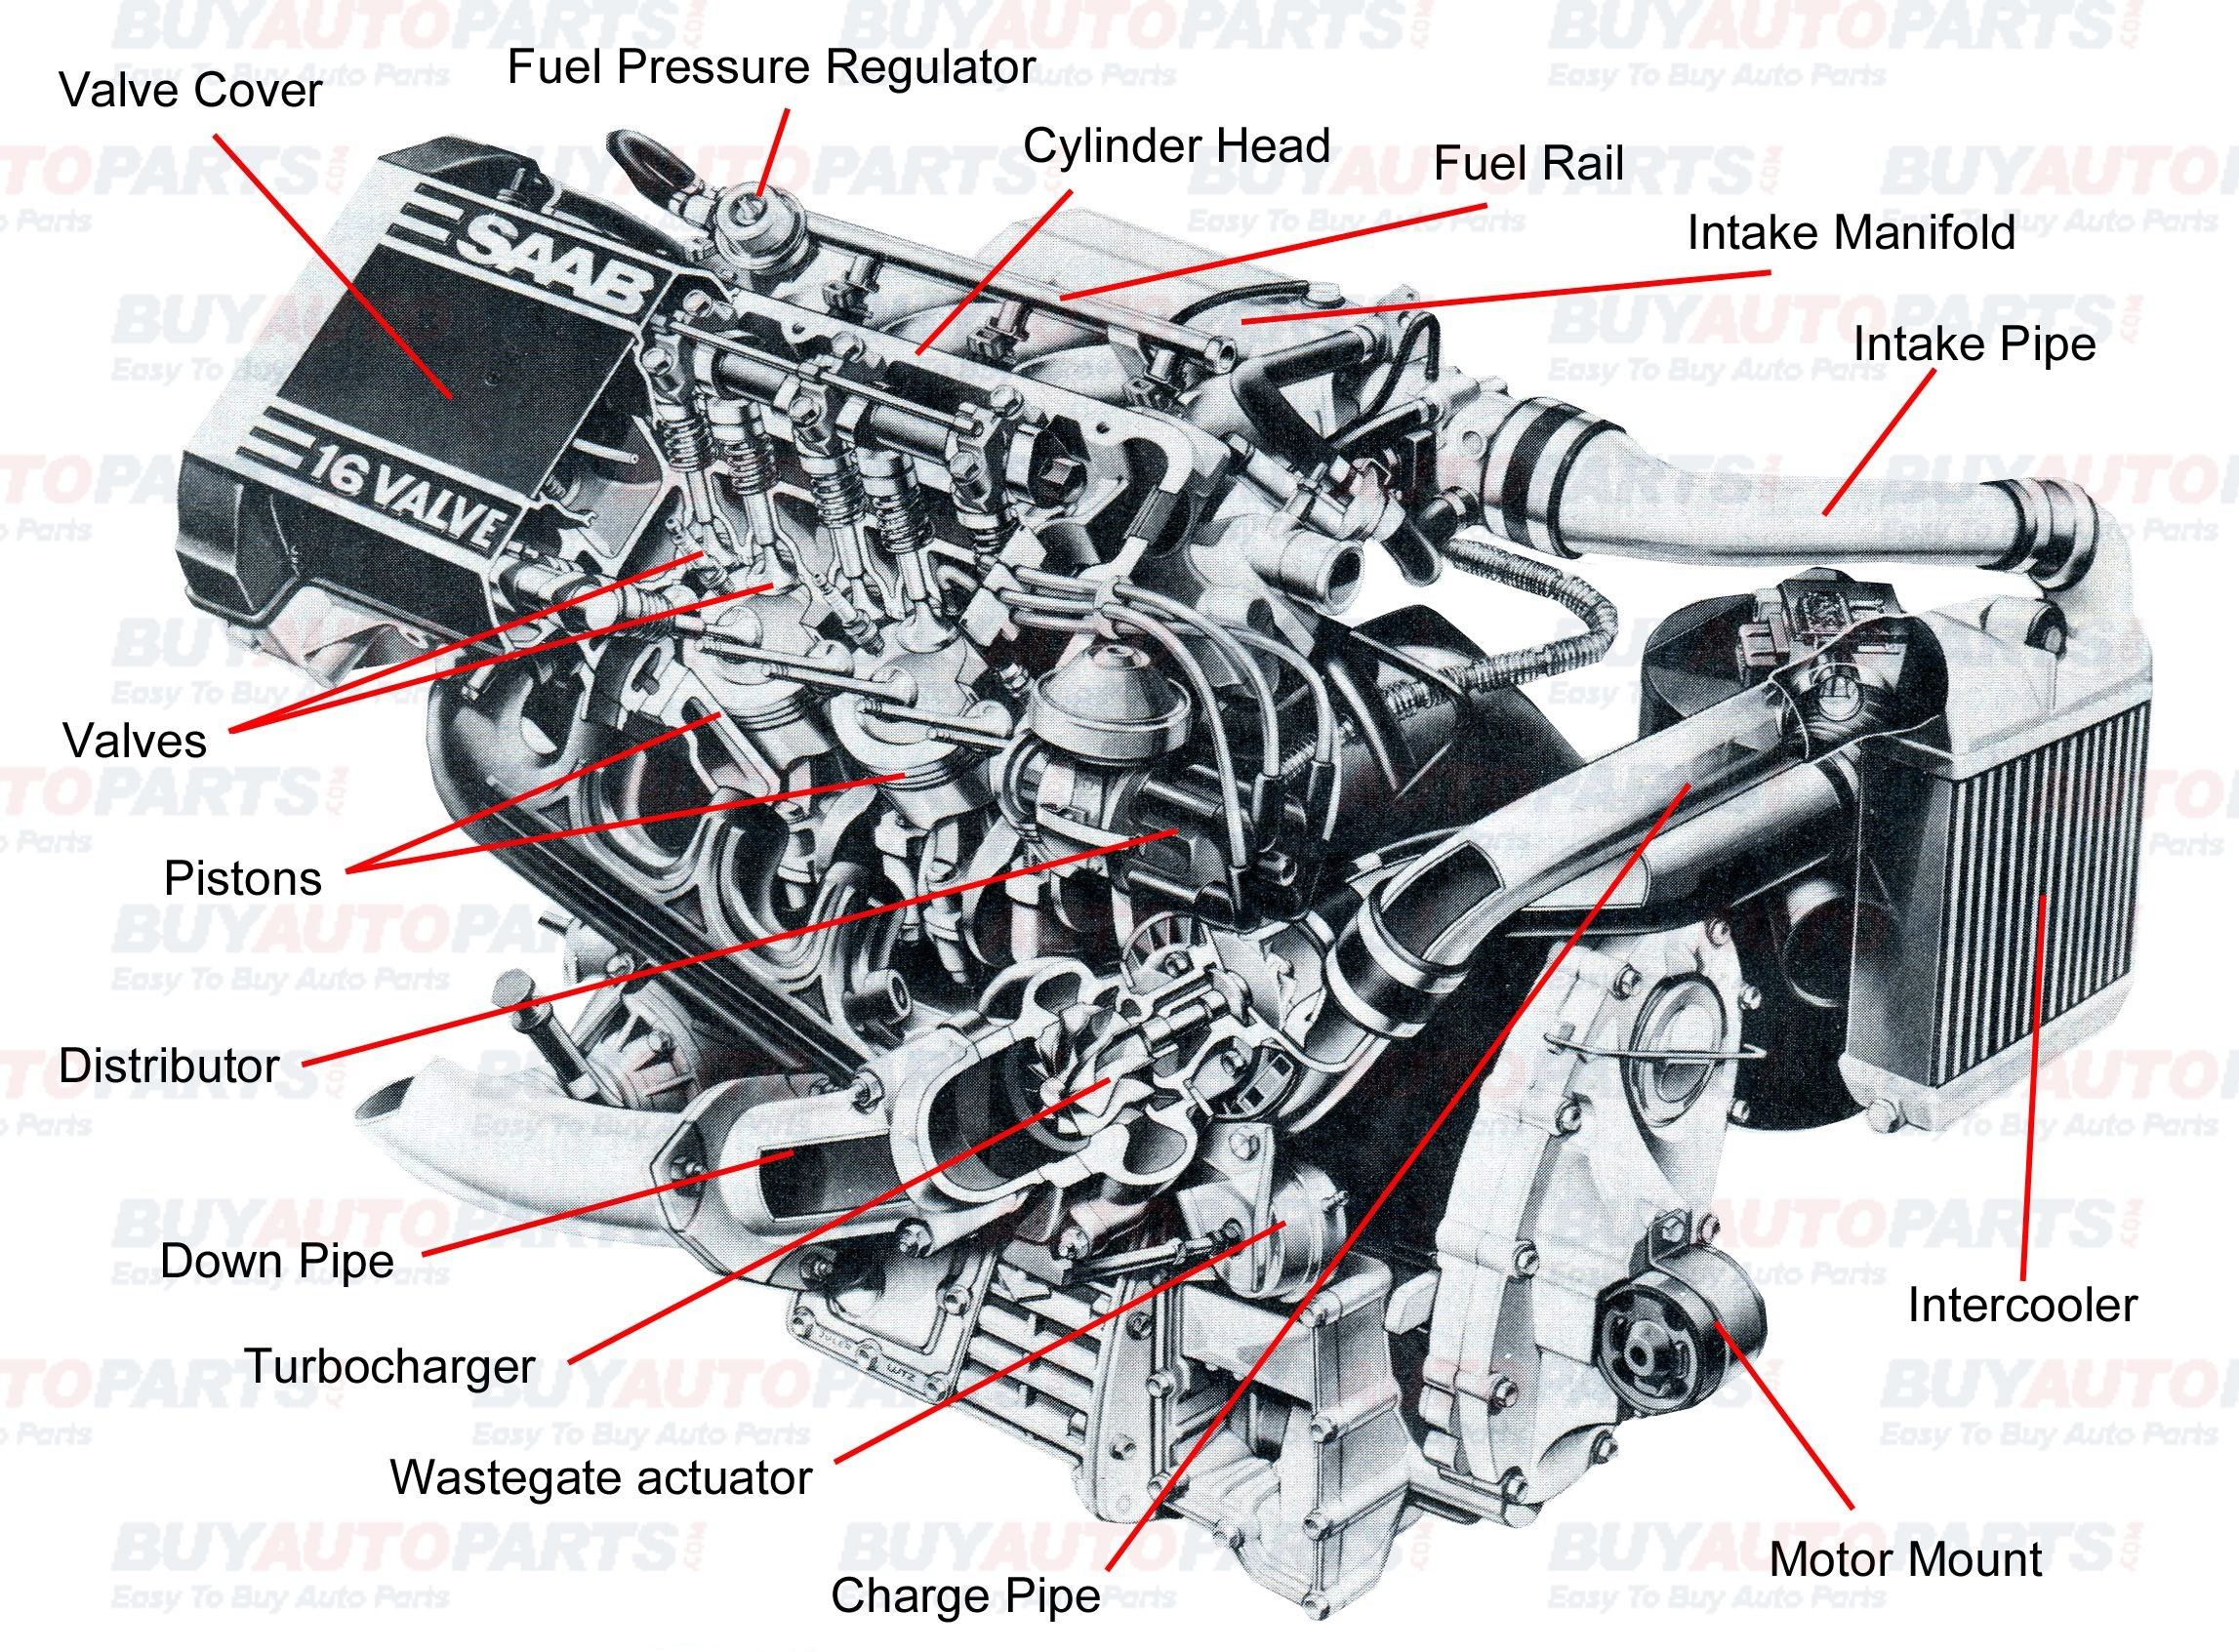 Car Engine Layout Diagram Pin by Jimmiejanet Testellamwfz On What Does An Engine with Turbo Of Car Engine Layout Diagram